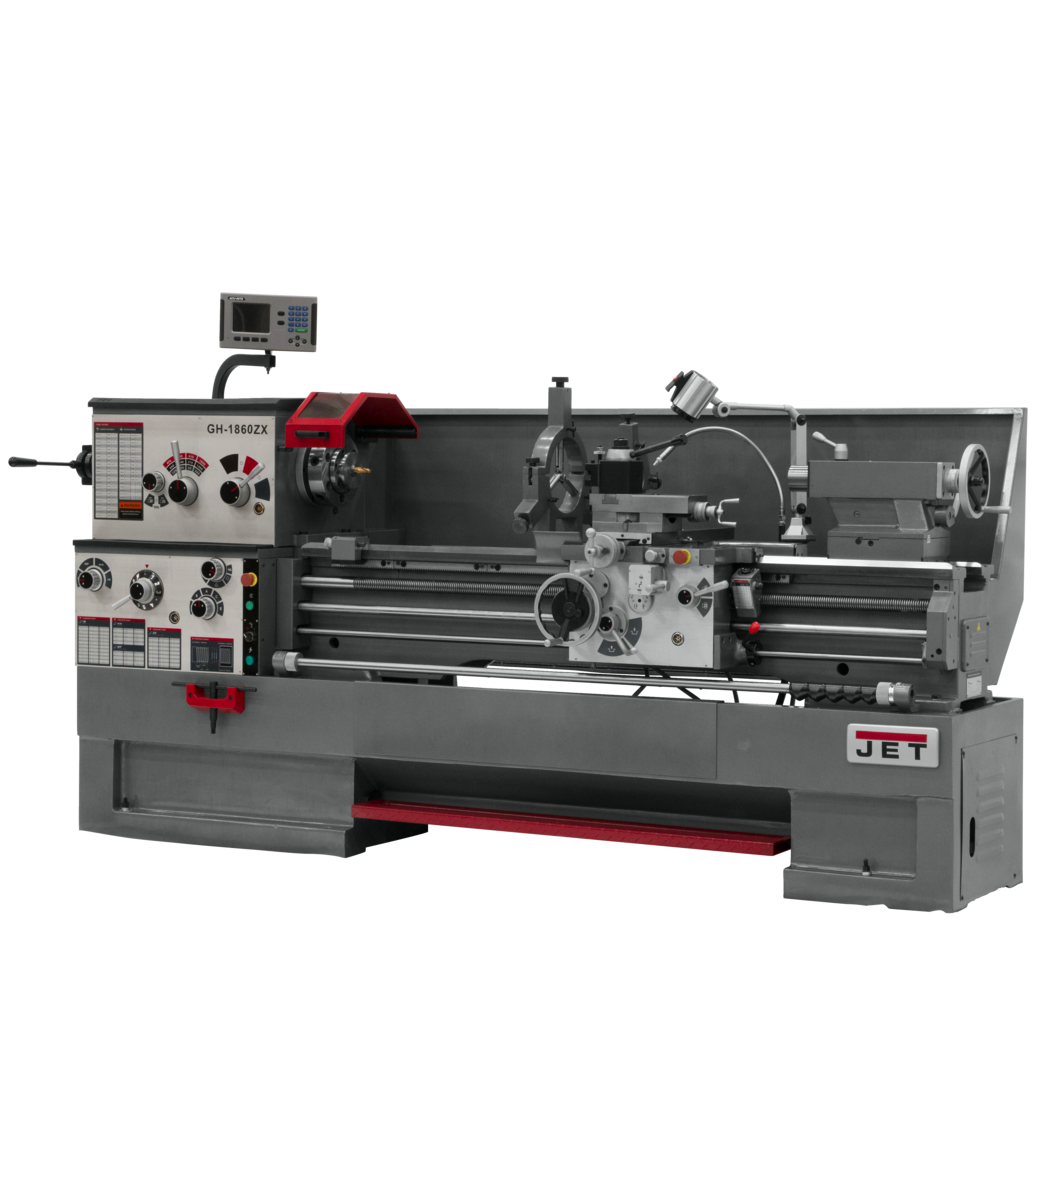 GH-1660ZX With Newall DP700 DRO With Taper Attachment and Collet Closer